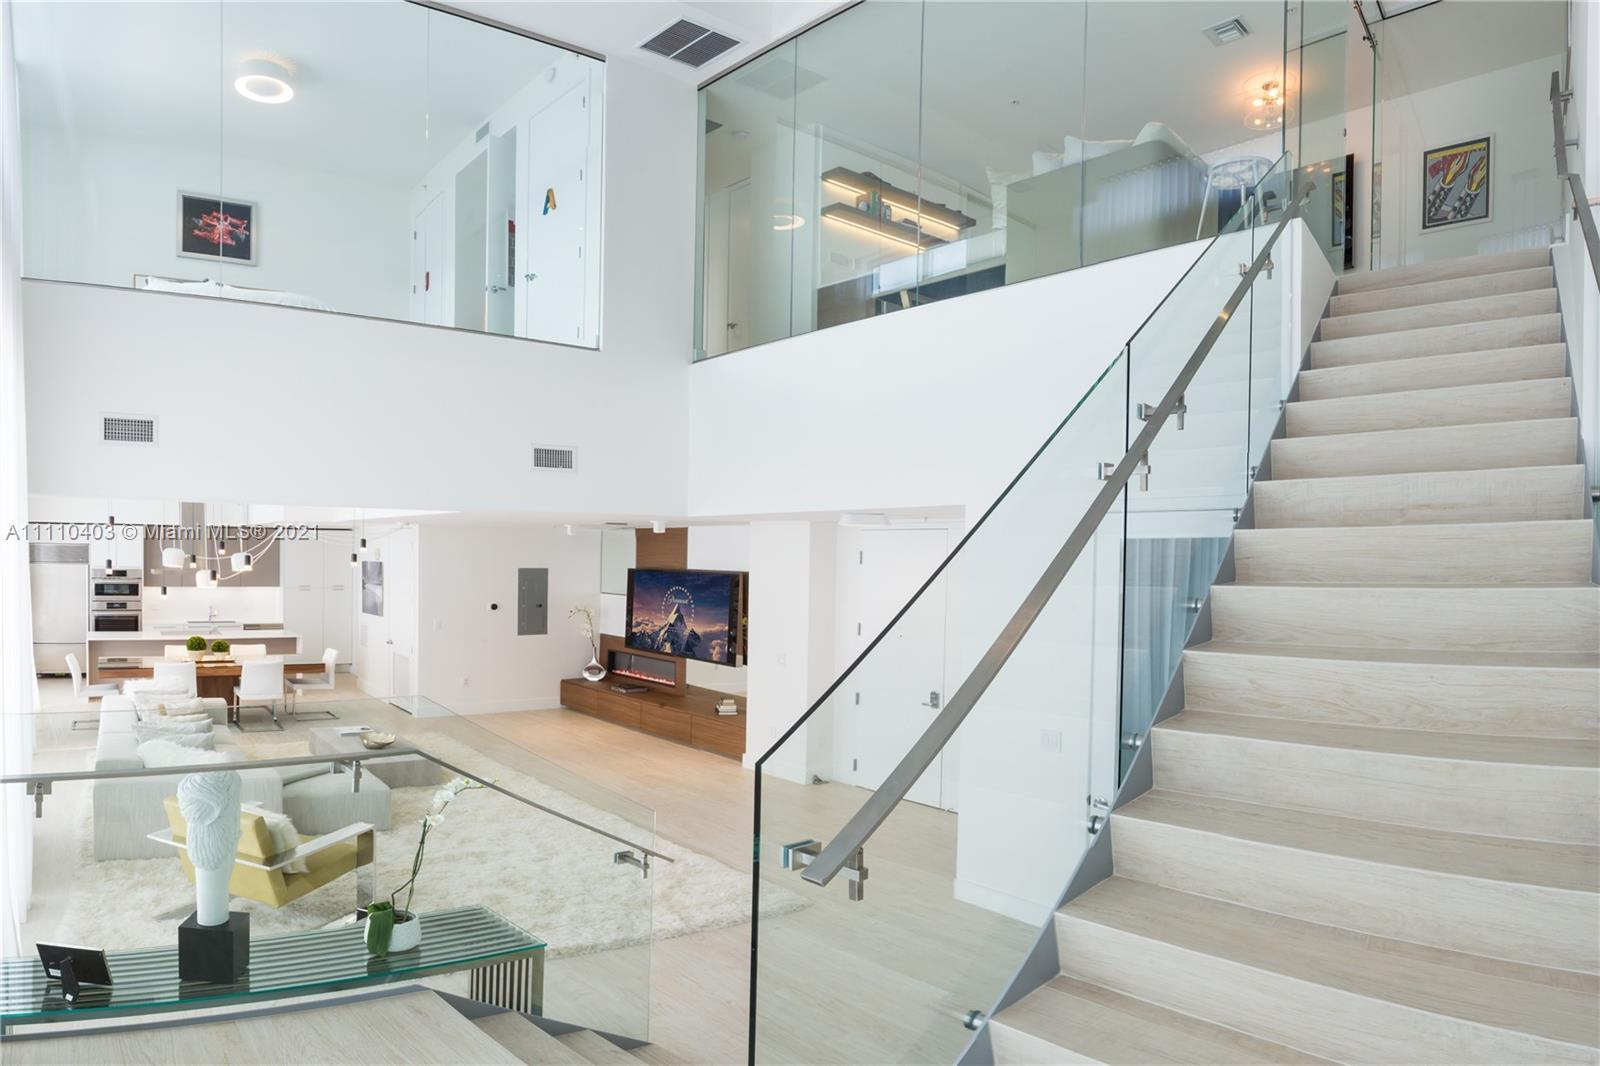 A must-see spectacular 2-story penthouse in the heart of Midtown Miami. This 2 BED + DEN (2,129 Sq.F